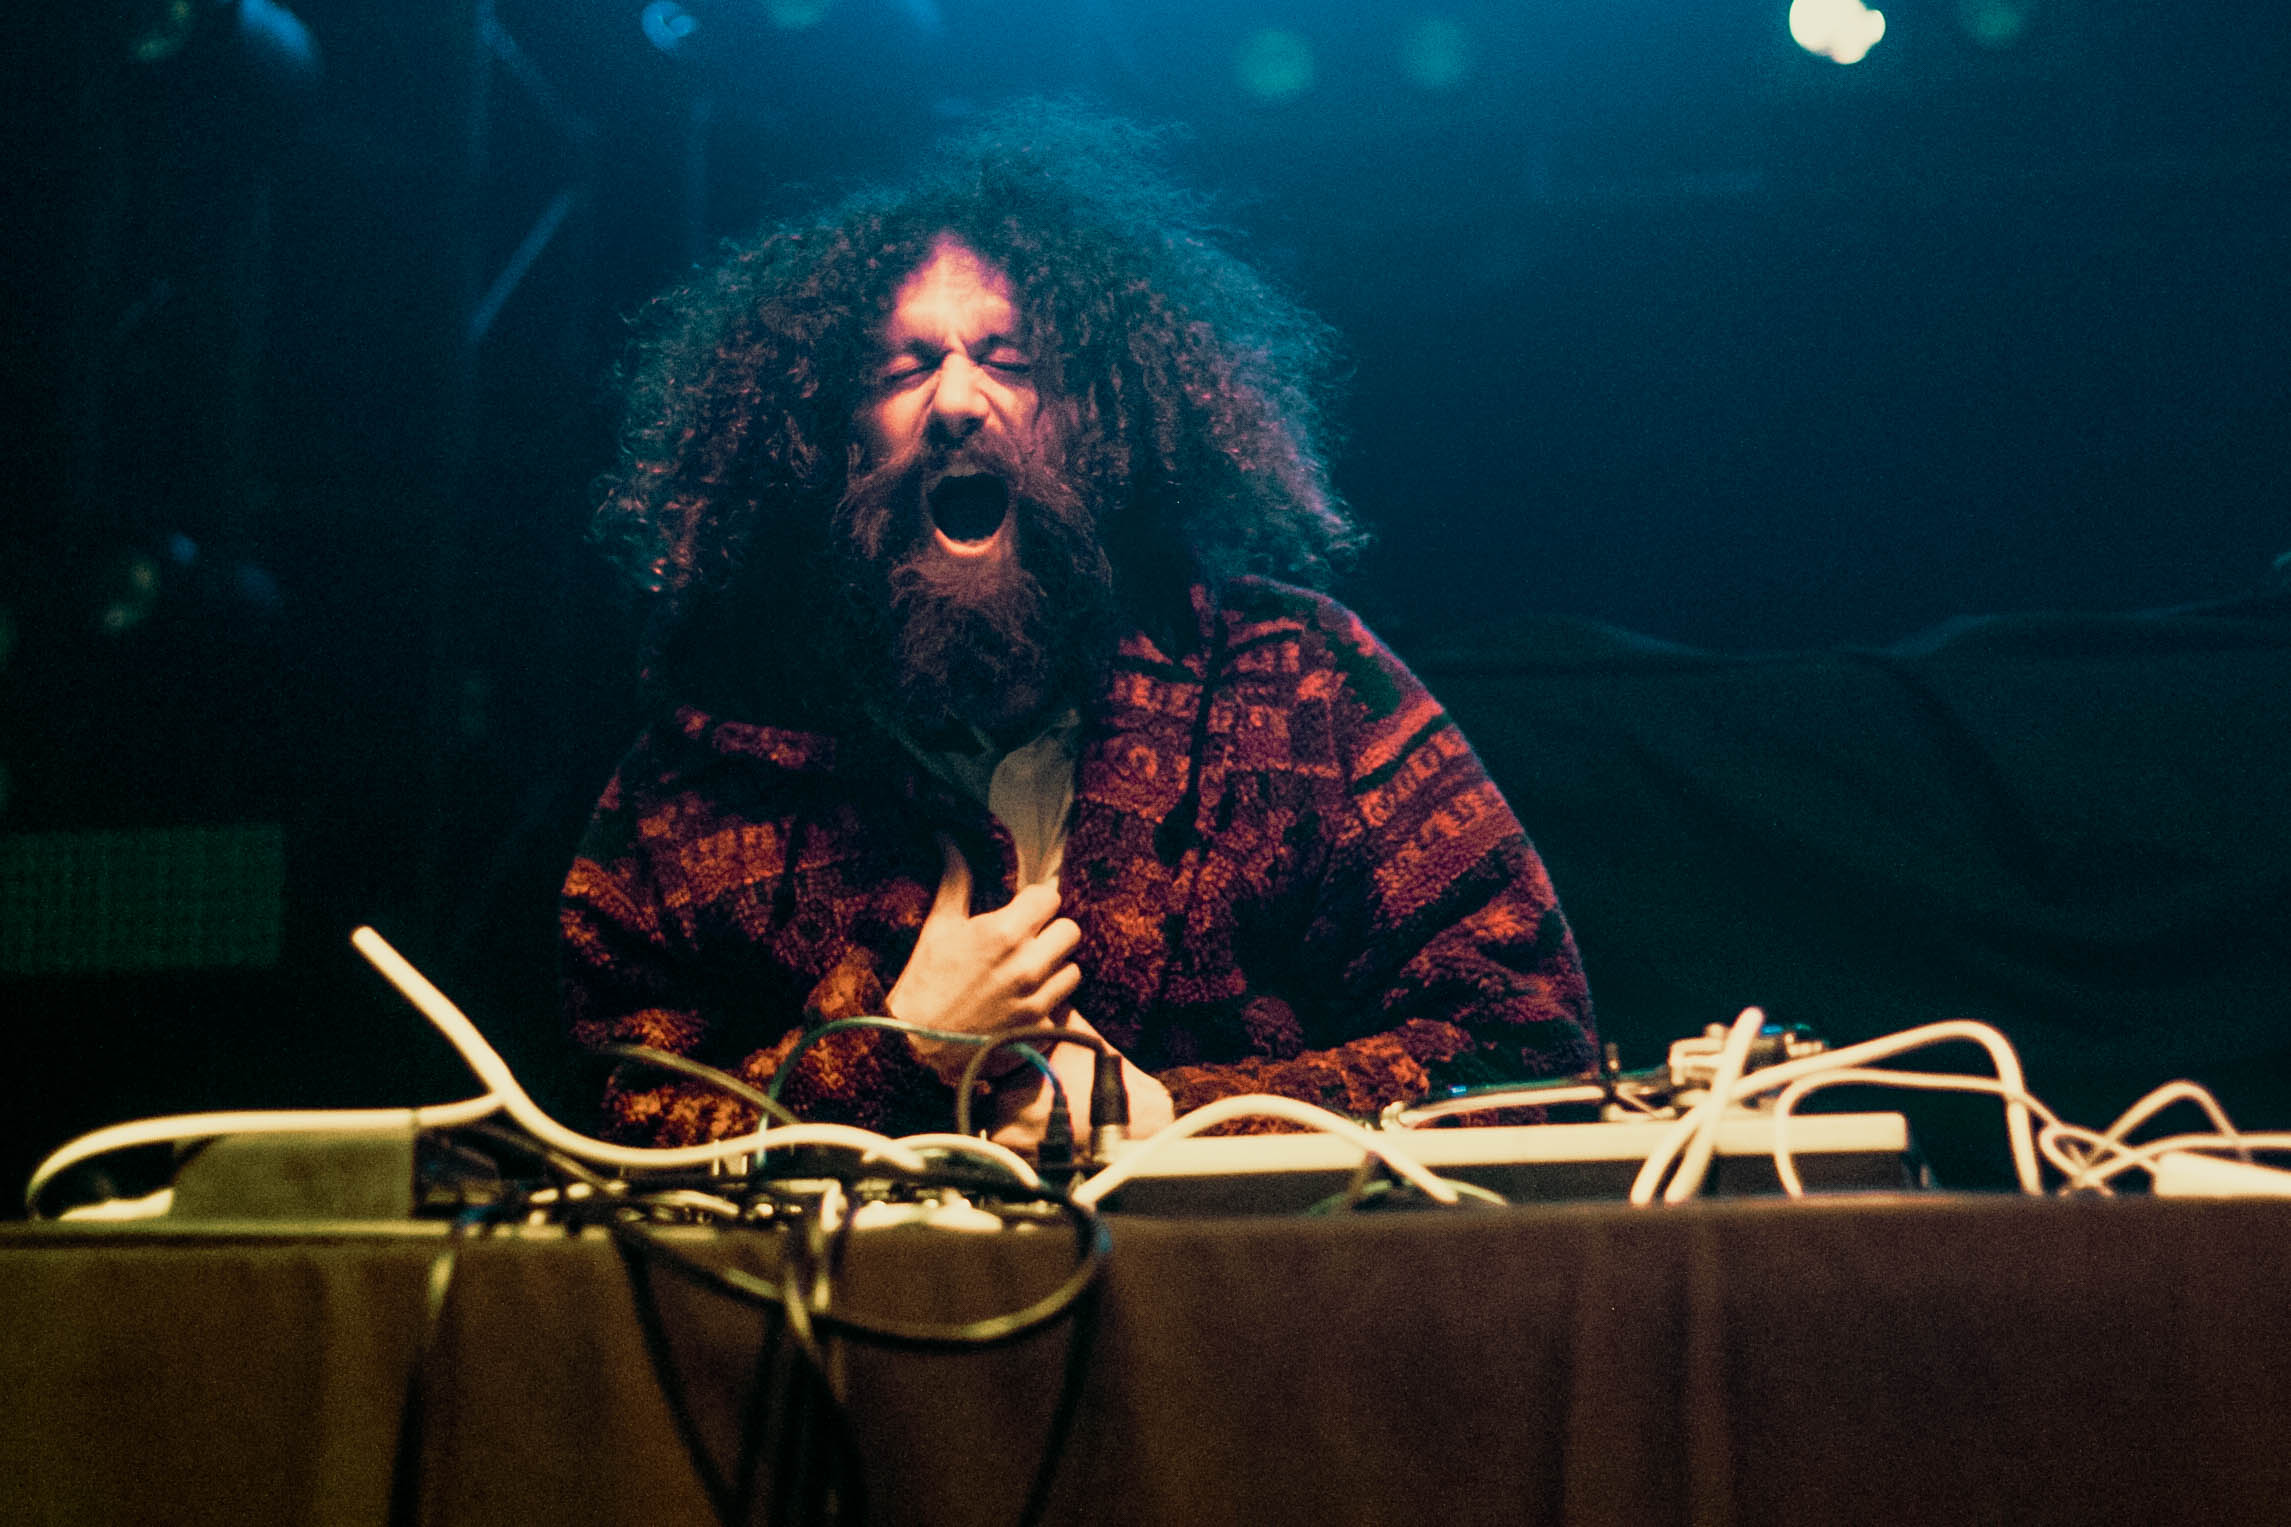 Gaslamp Killer @ Observatory North Park 1/30/17. Photo by Hector Vergara (@theHextron) for www.BlurredCulture.com.